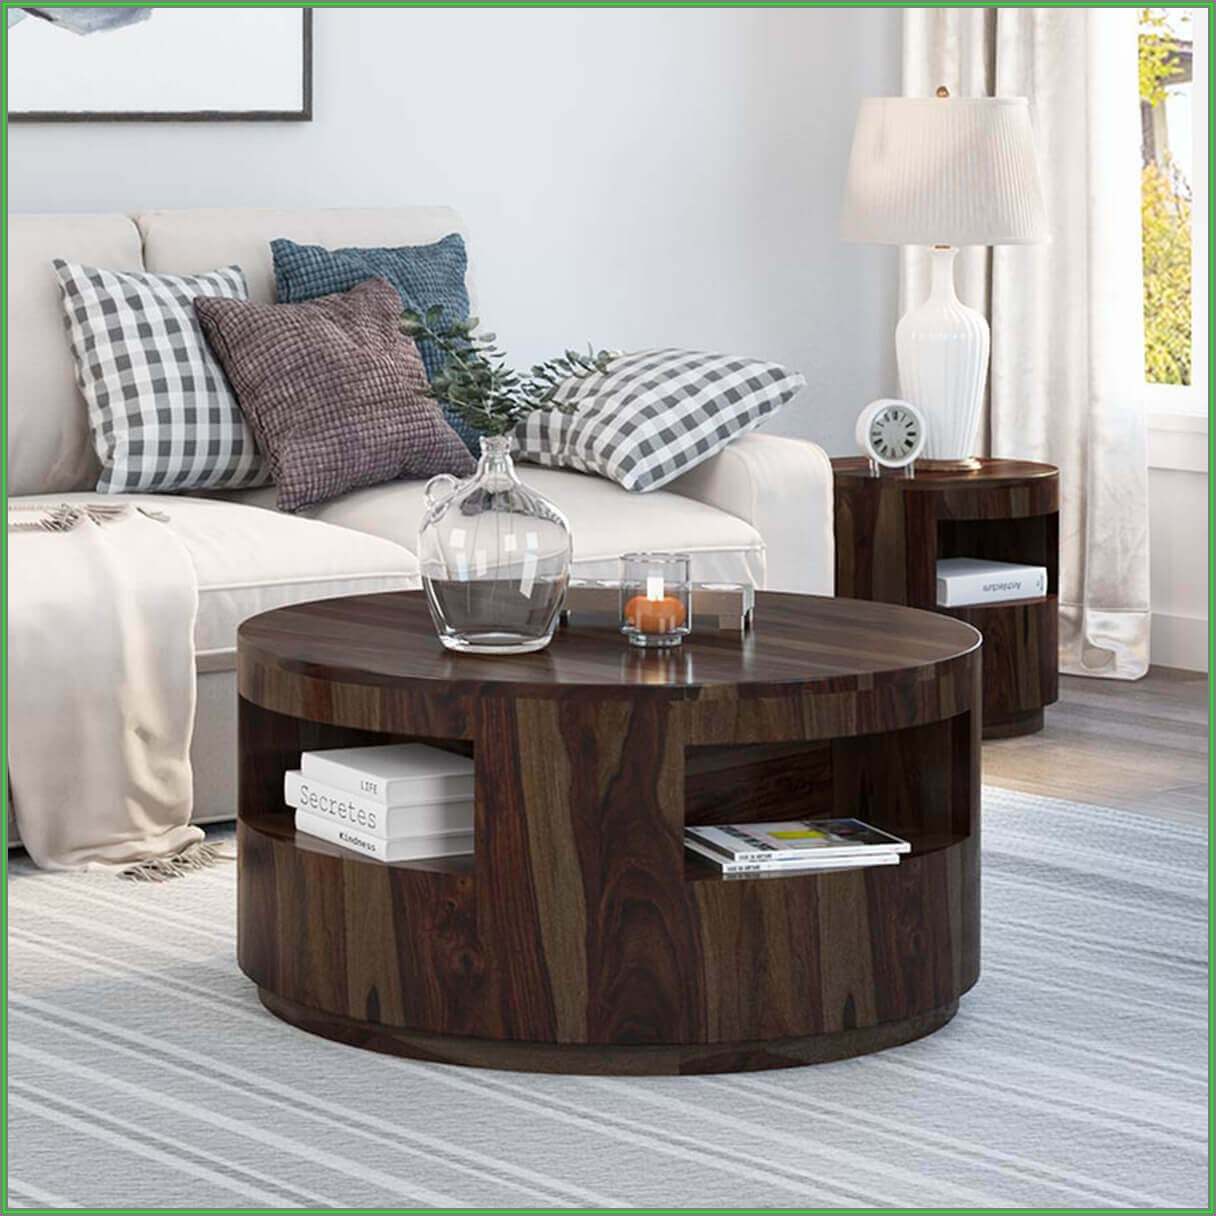 Rustic Wood Coffee Table Round